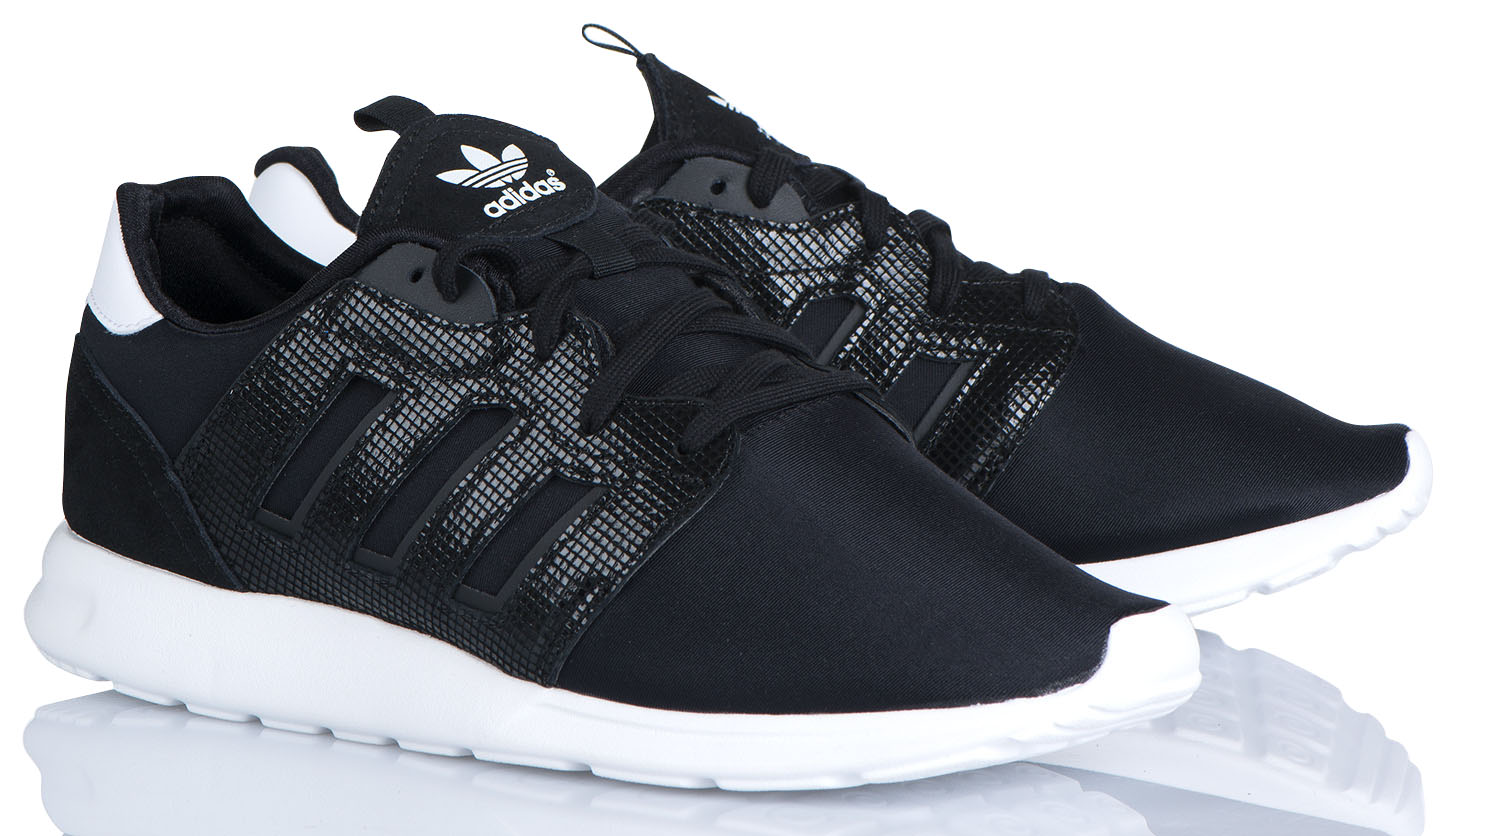 low priced 5594a 51d44 adidas zx 500 chaussures homme